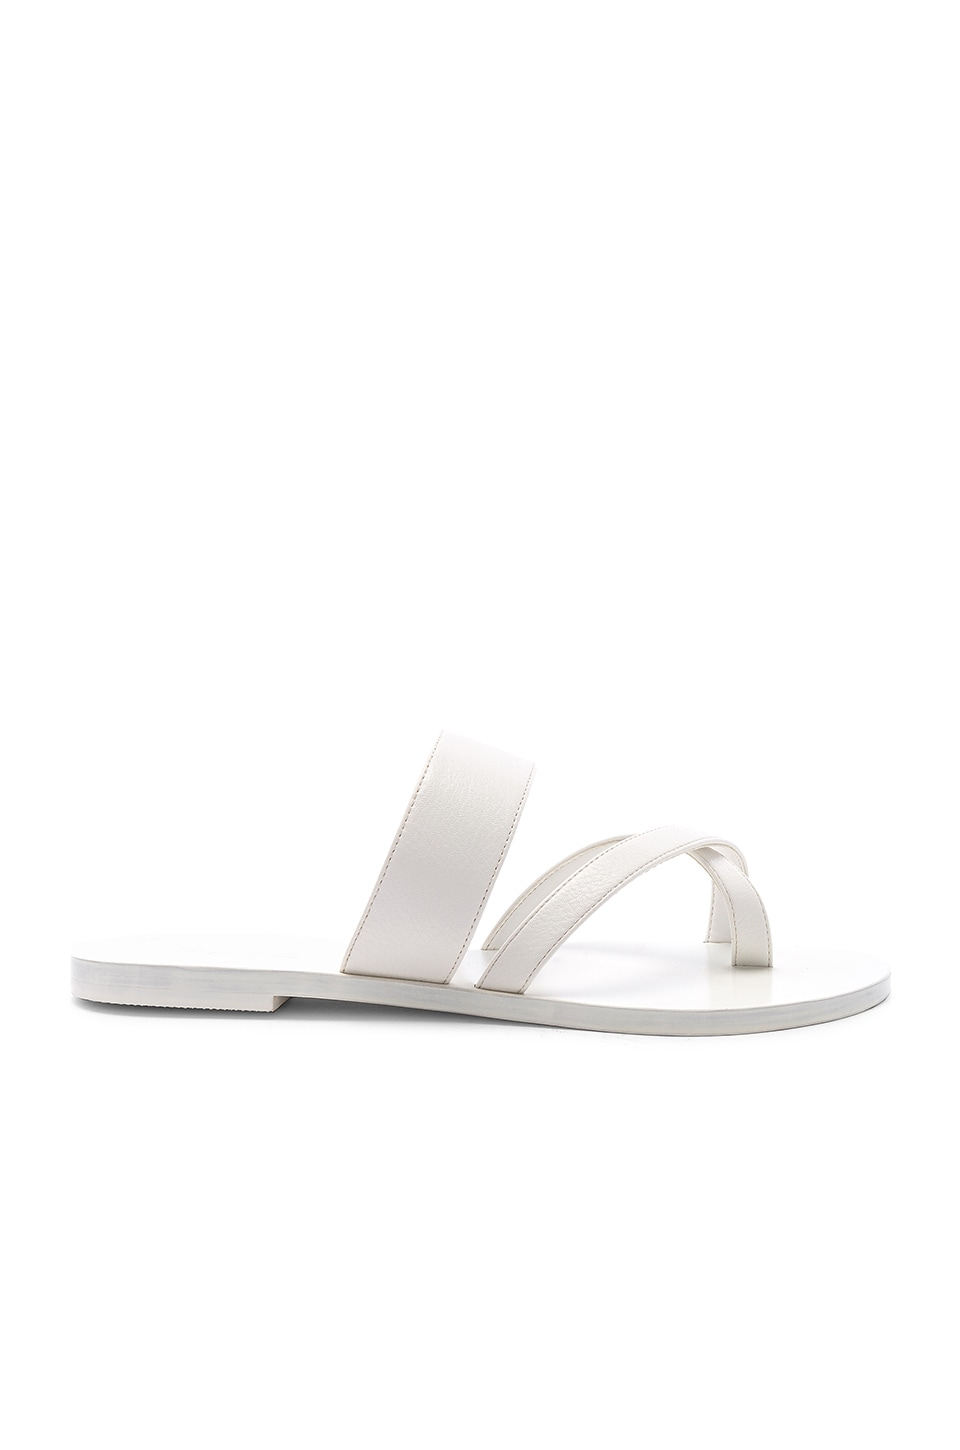 RAYE Crescent Sandal in White